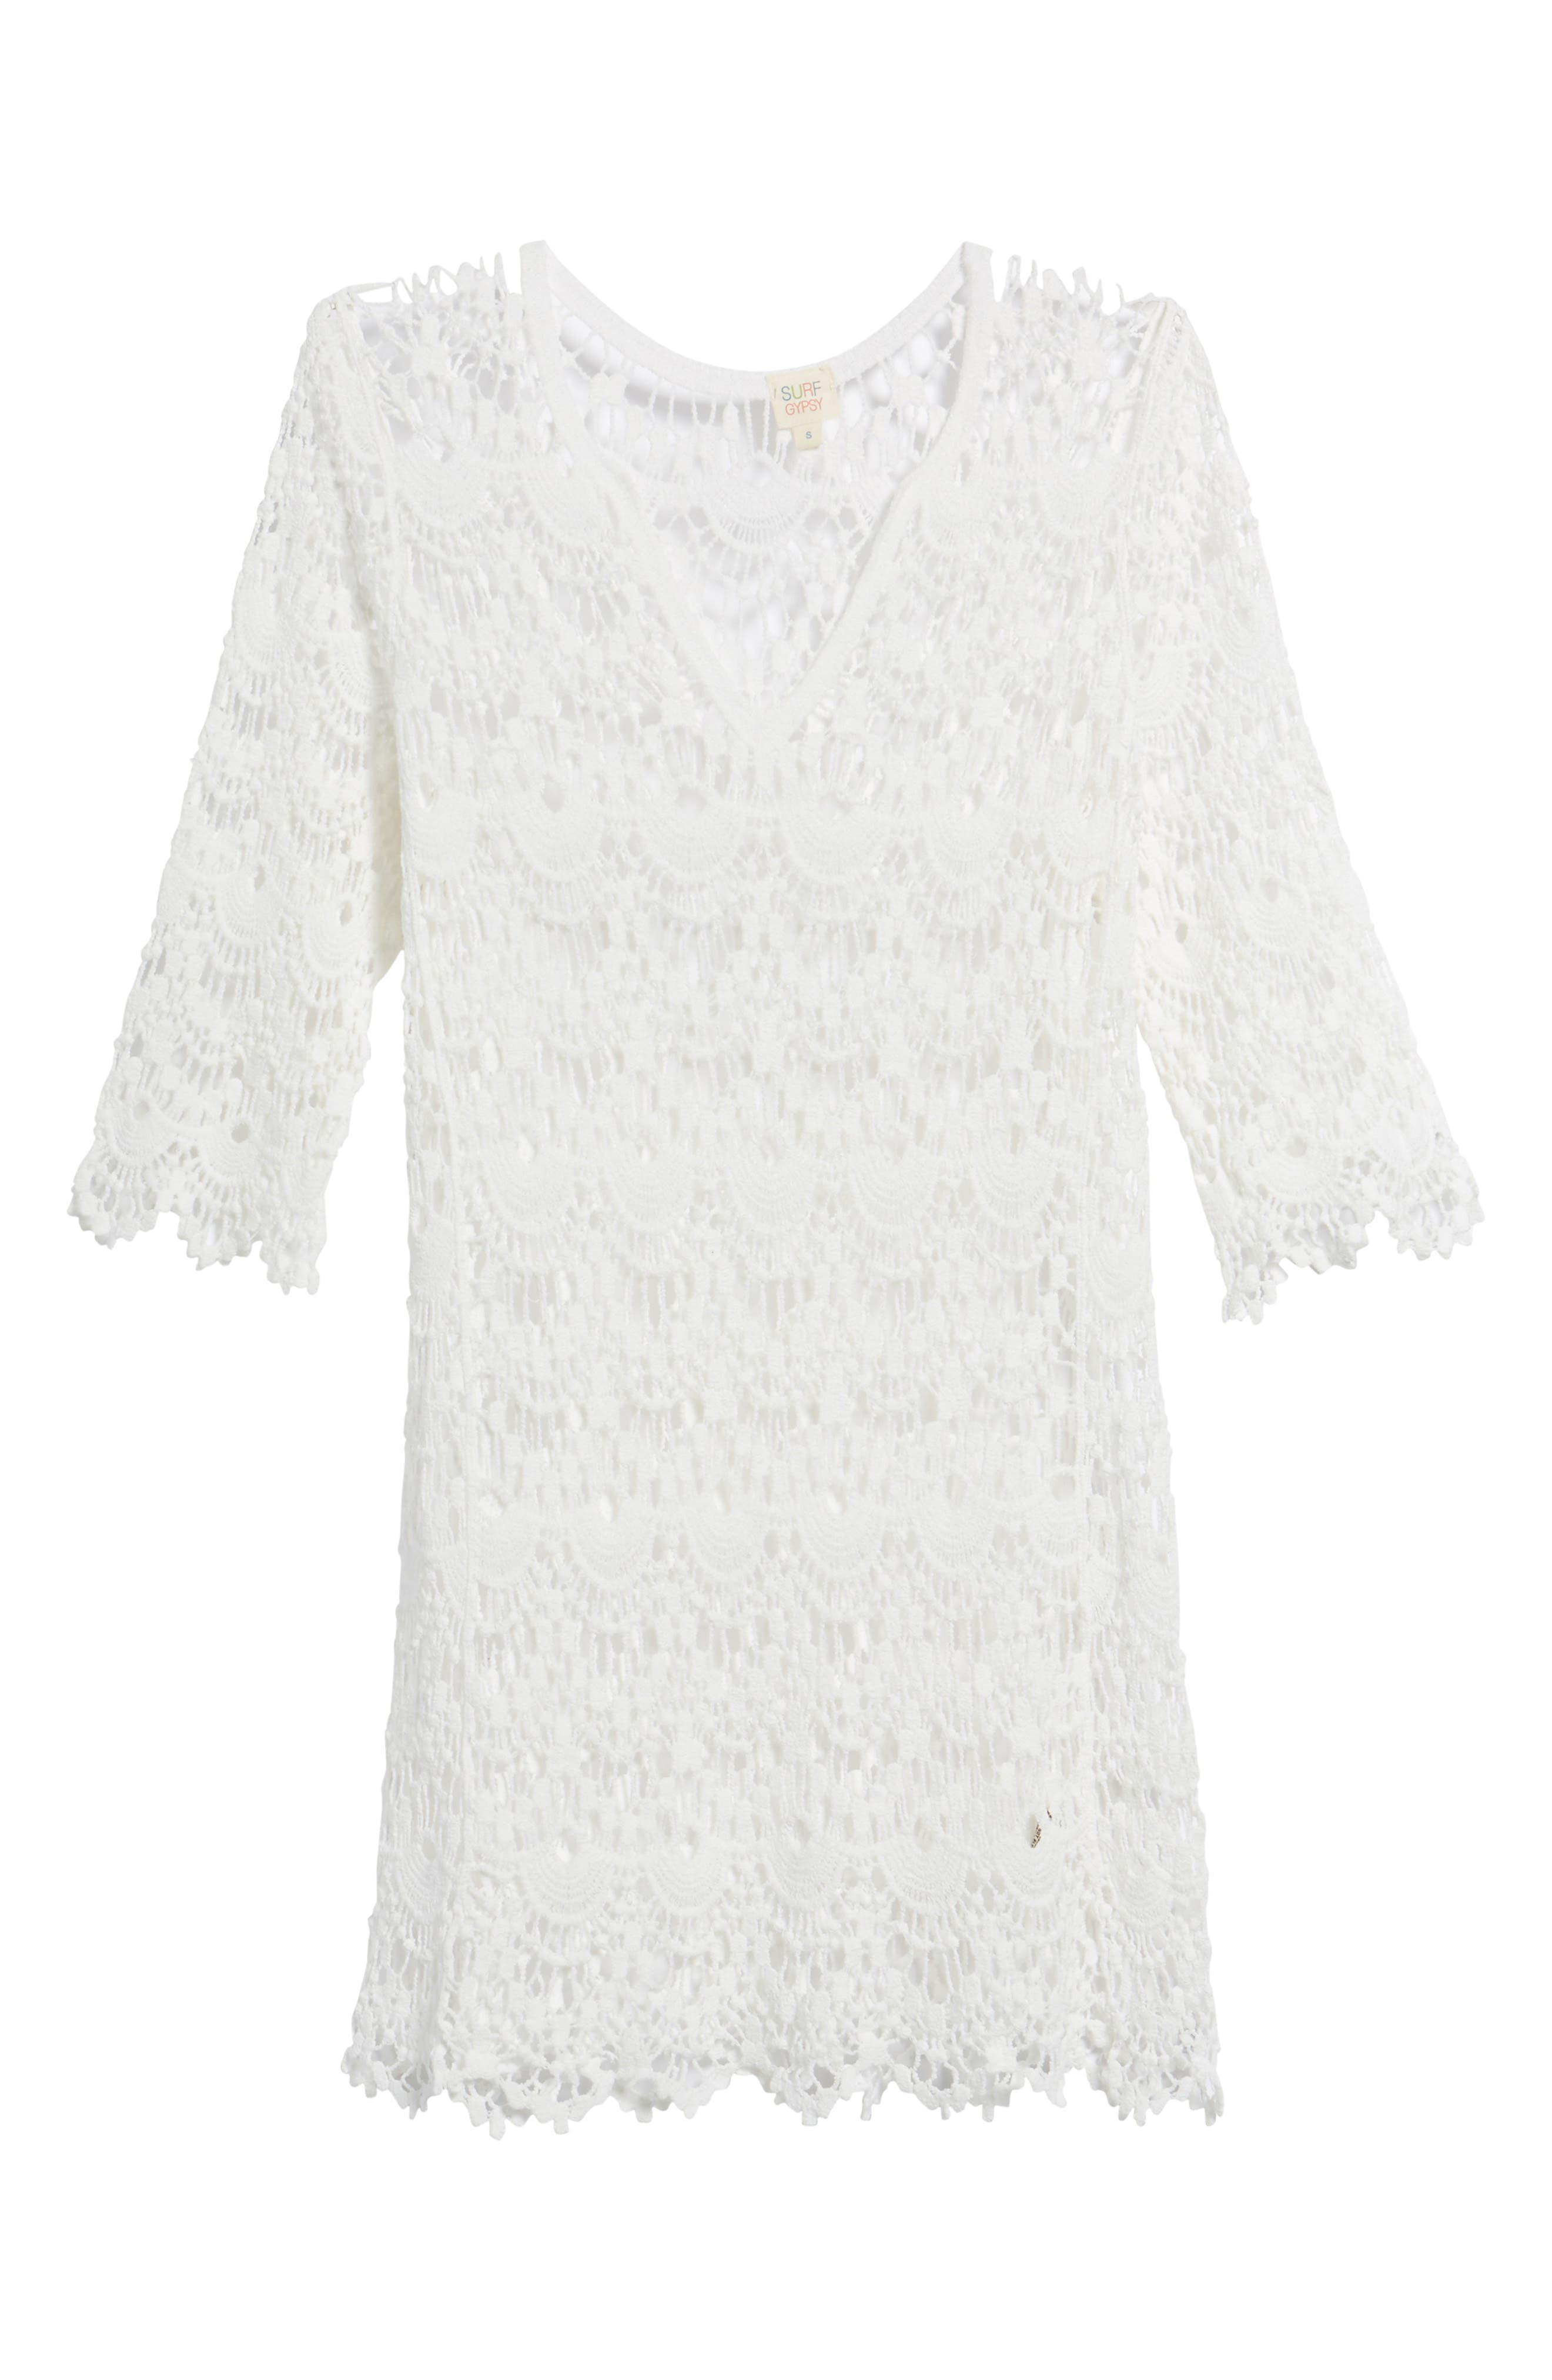 Crochet Cover-Up Tunic,                             Alternate thumbnail 6, color,                             White